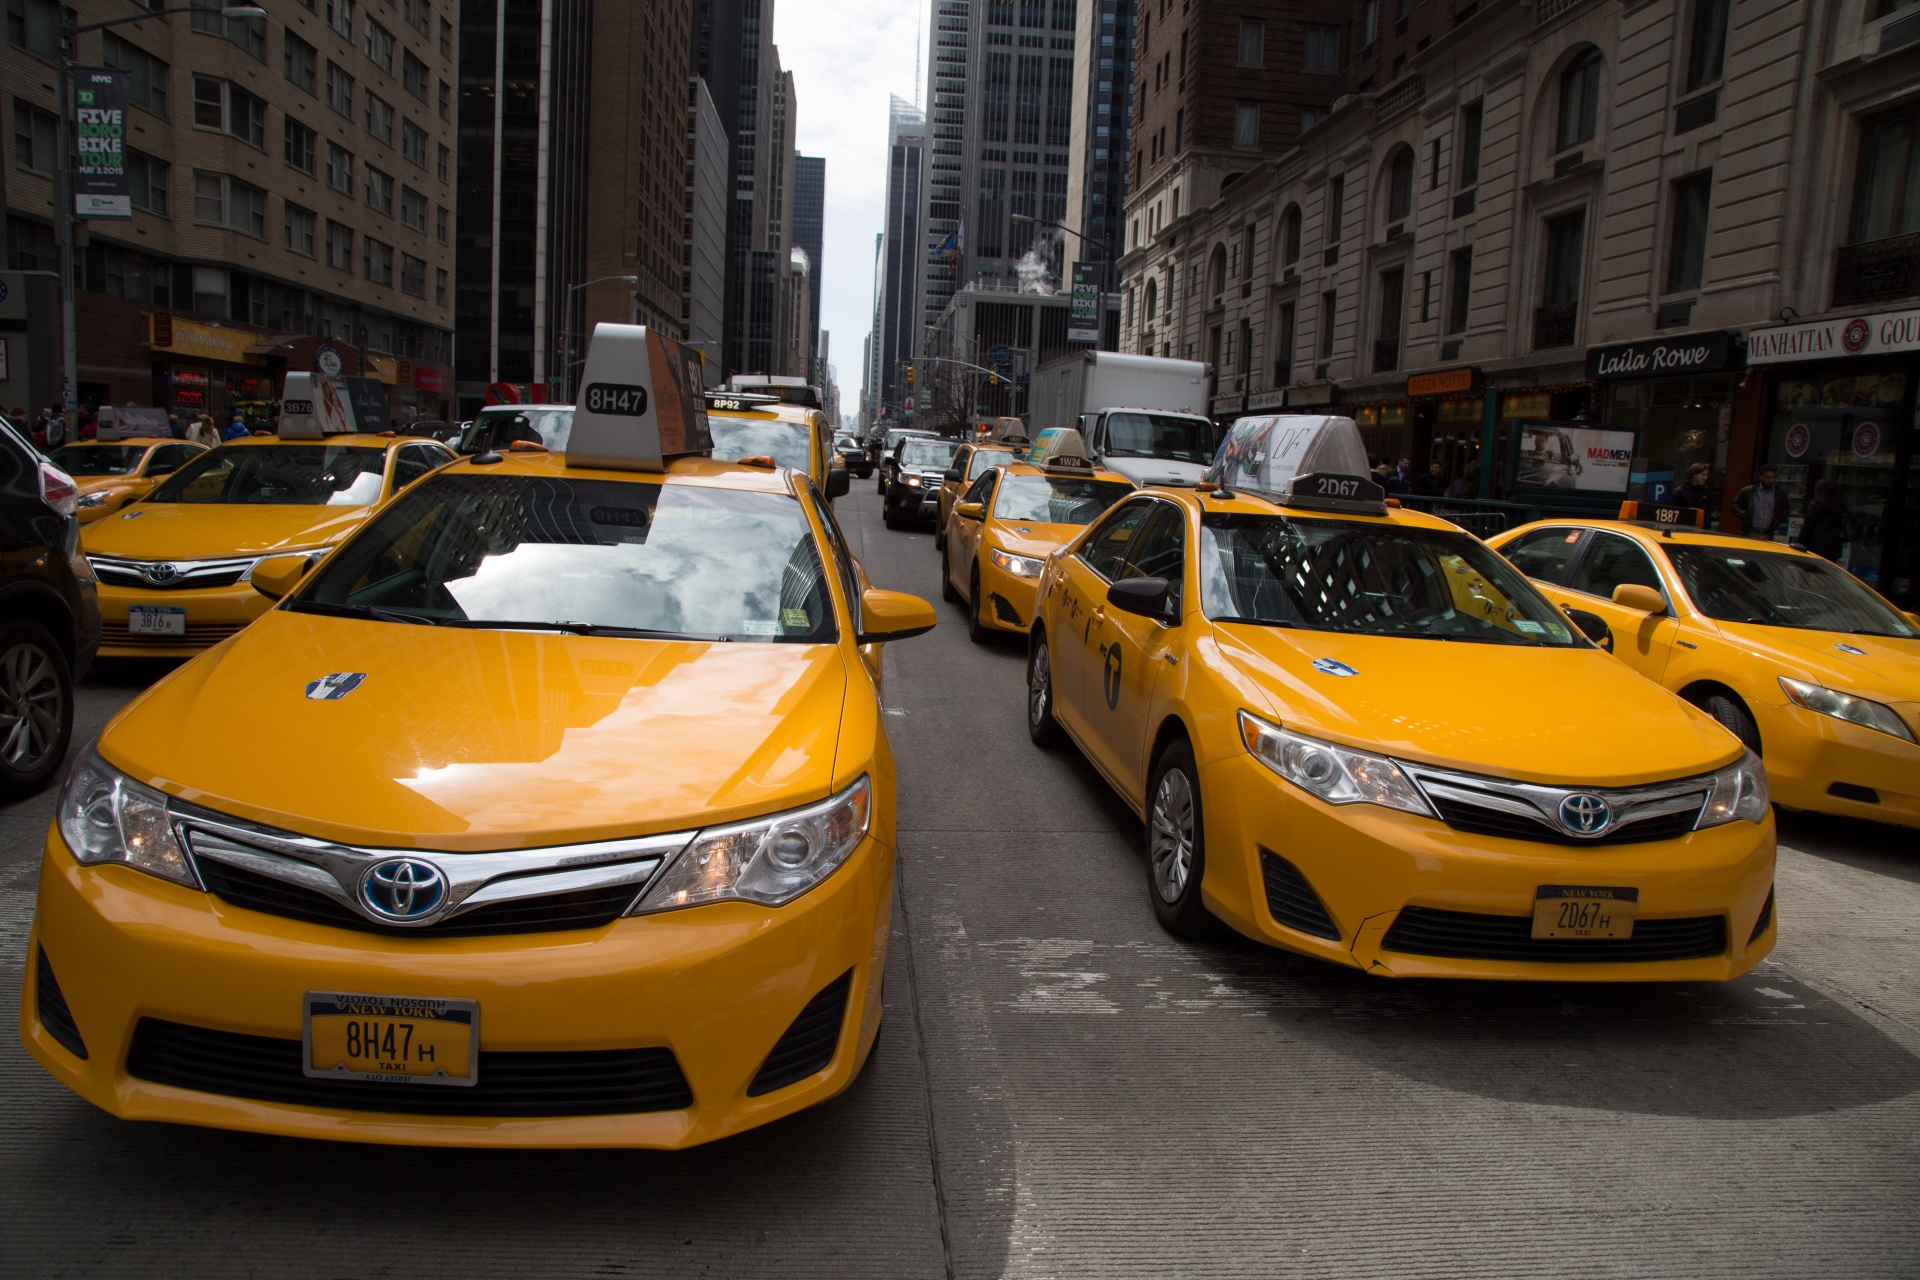 How to start a taxi business in India - iPleaders